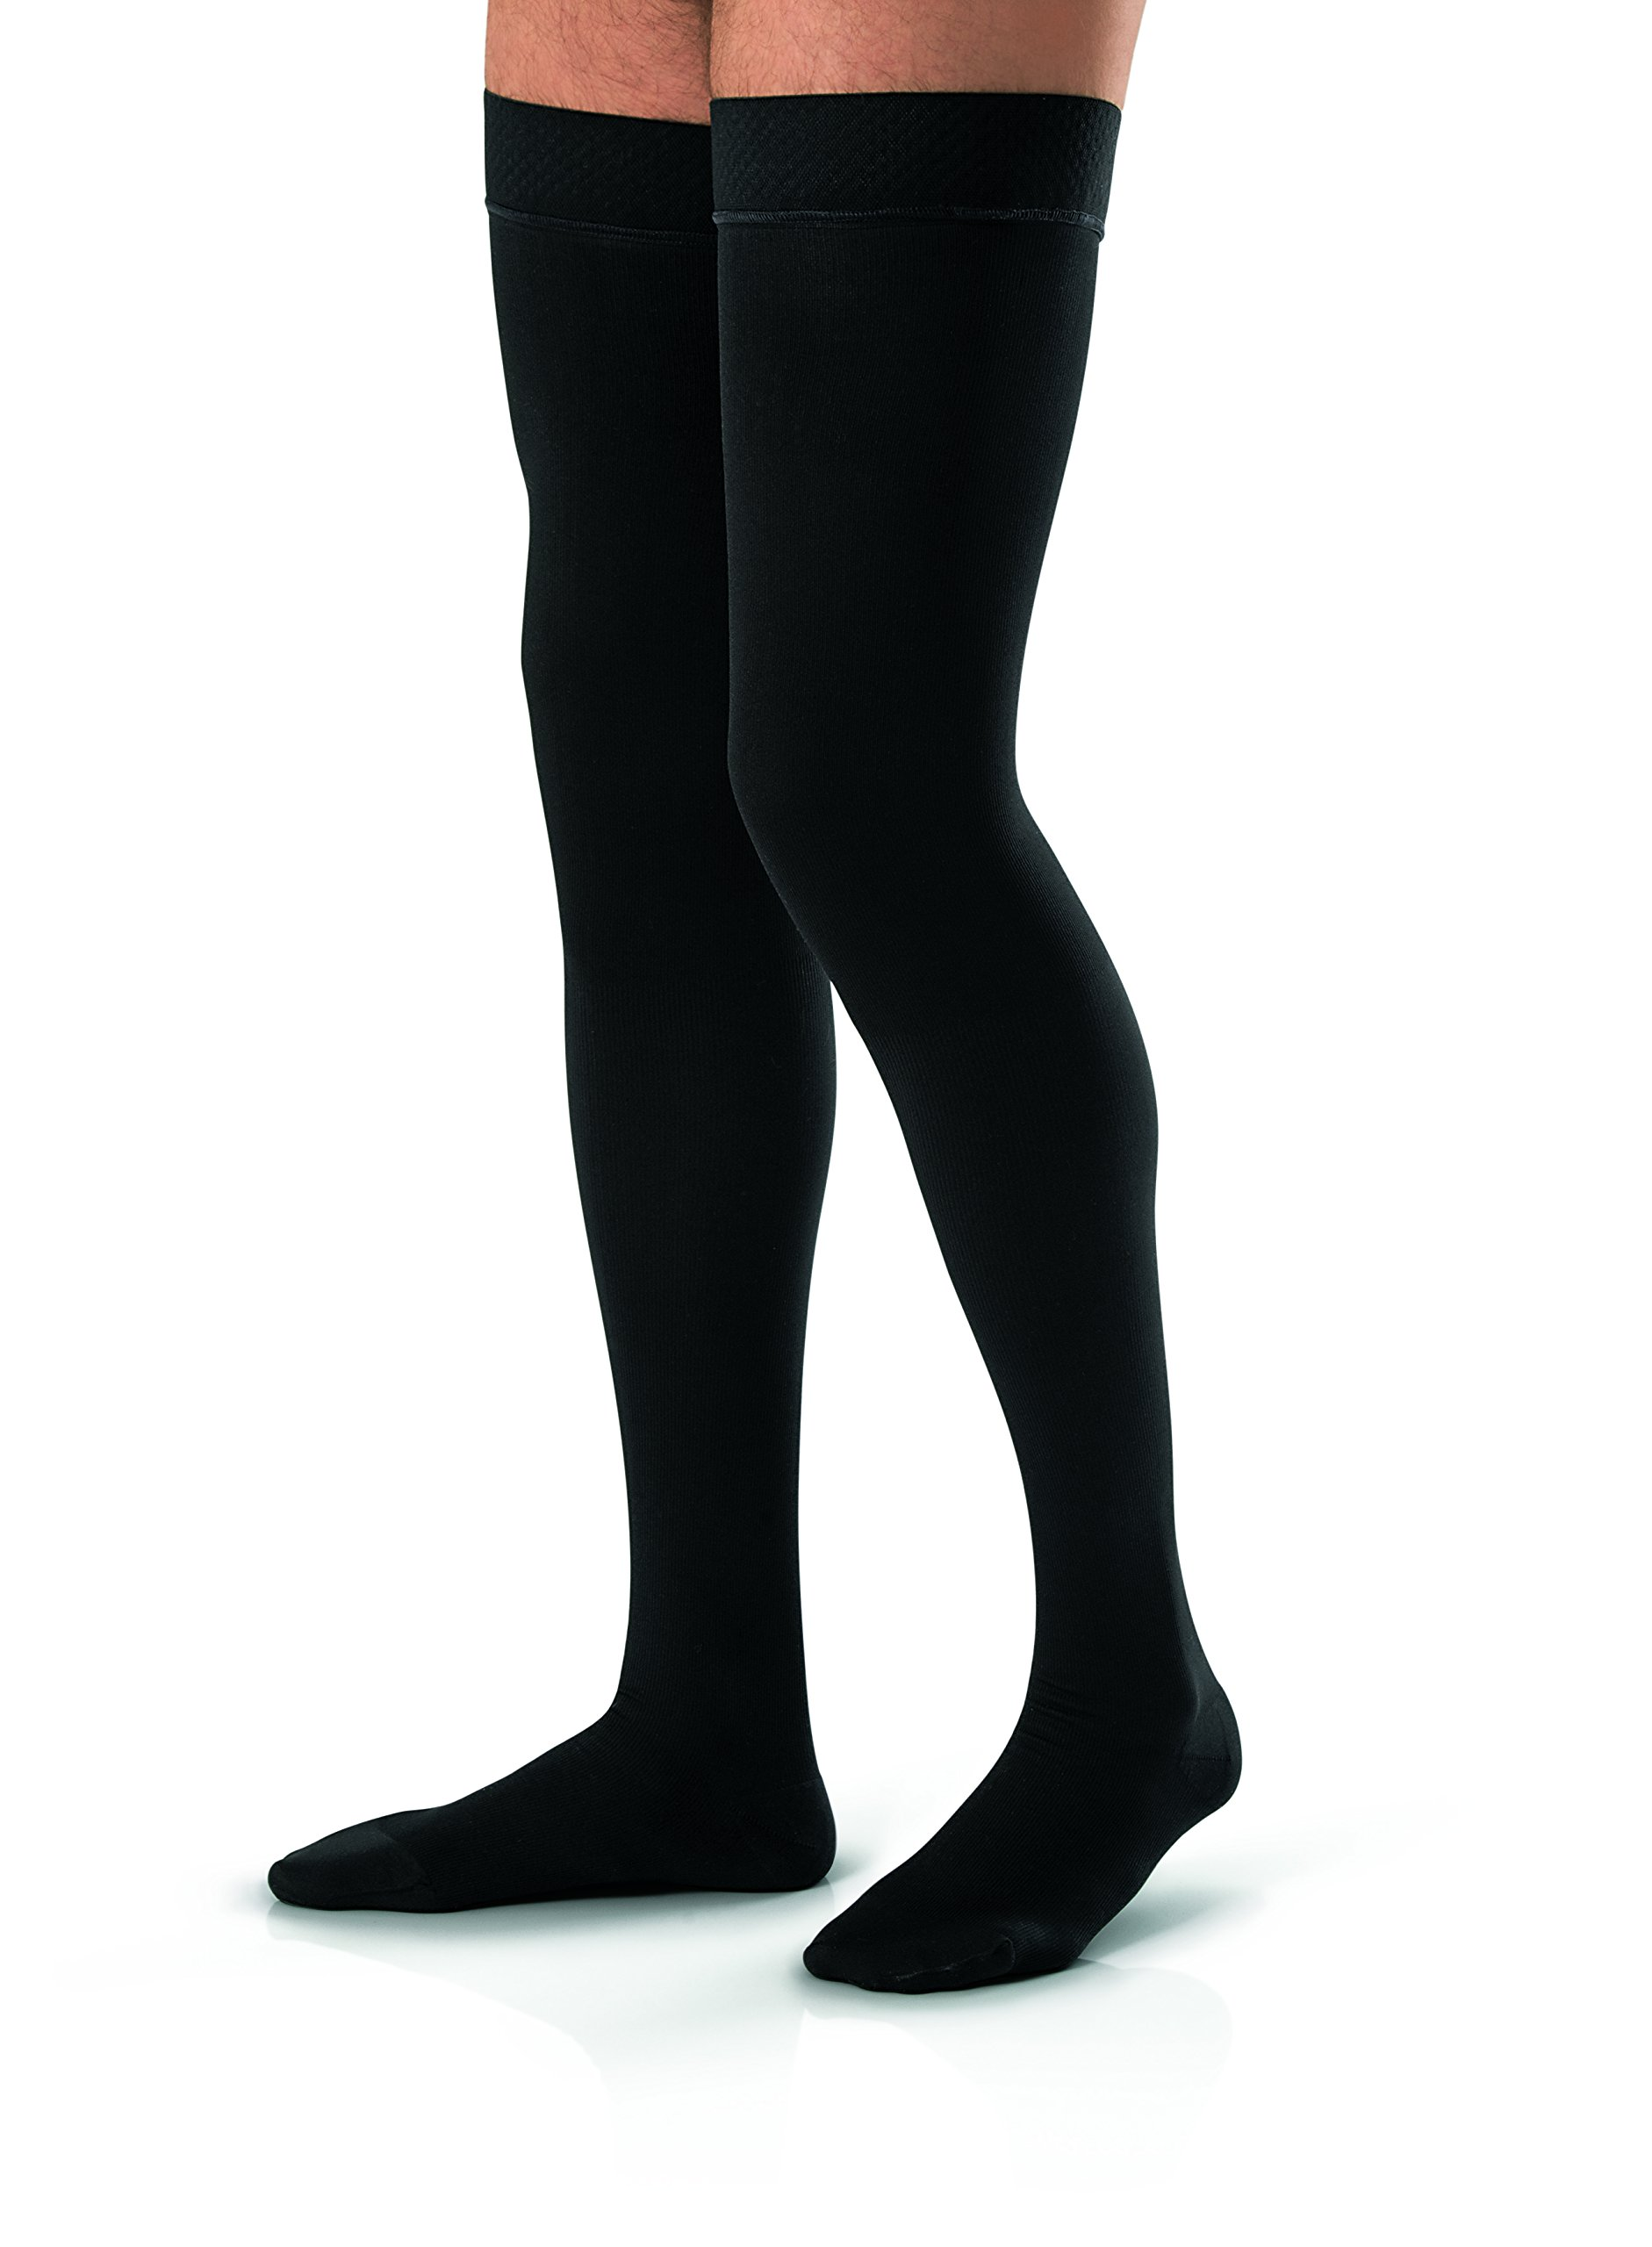 JOBST forMen Thigh High 30-40 mmHg Ribbed Dress Compression Stocking, Closed Toe, X-Large, Black